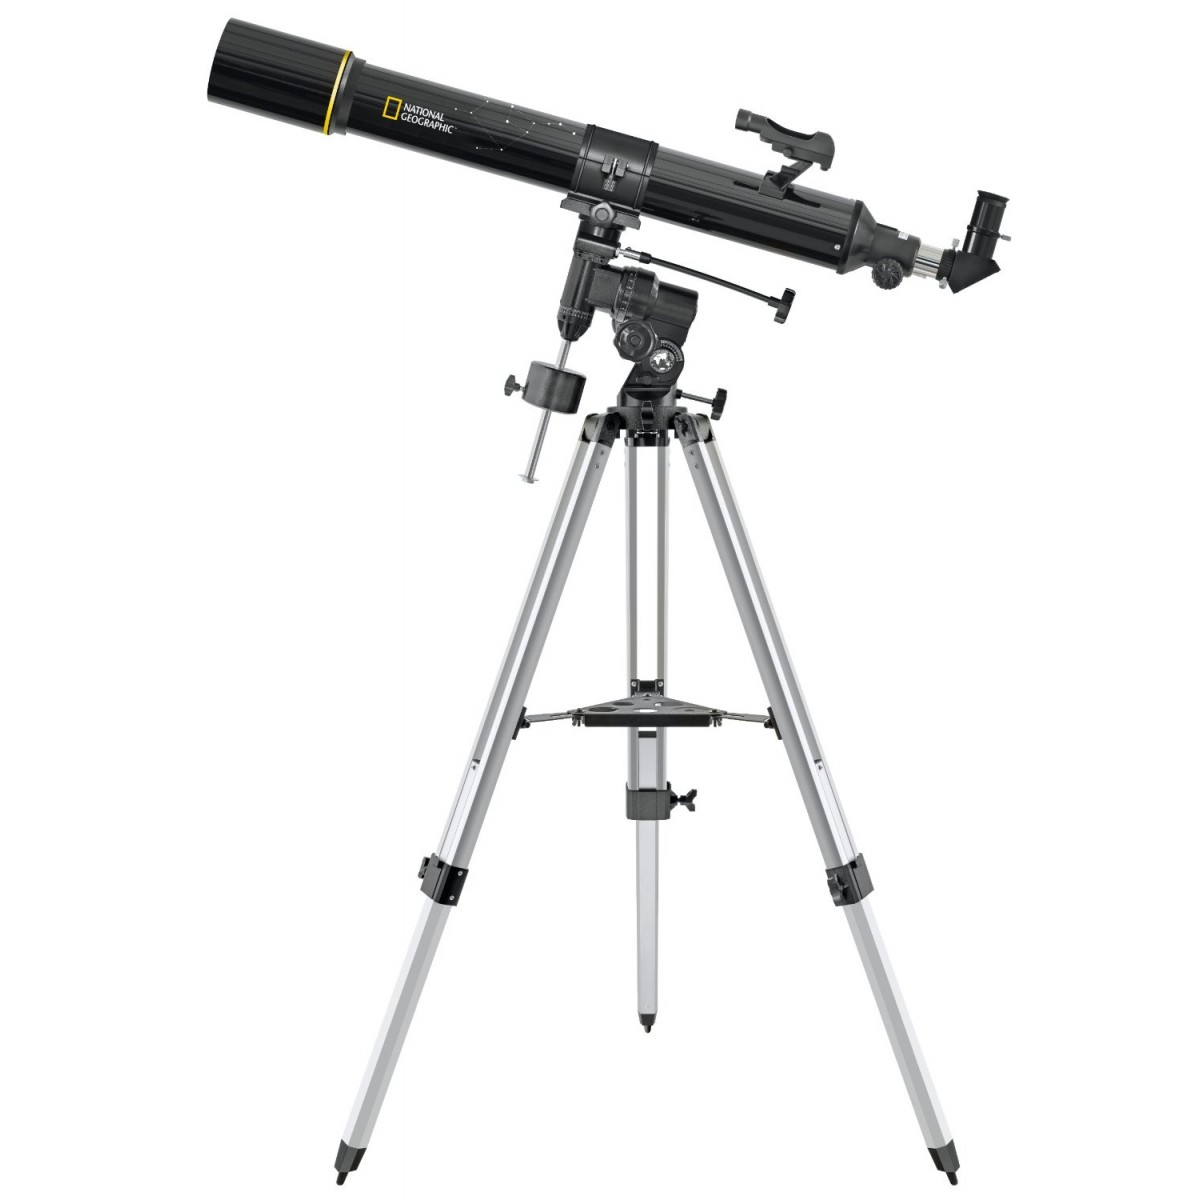 zennox 76x700 telescope instructions